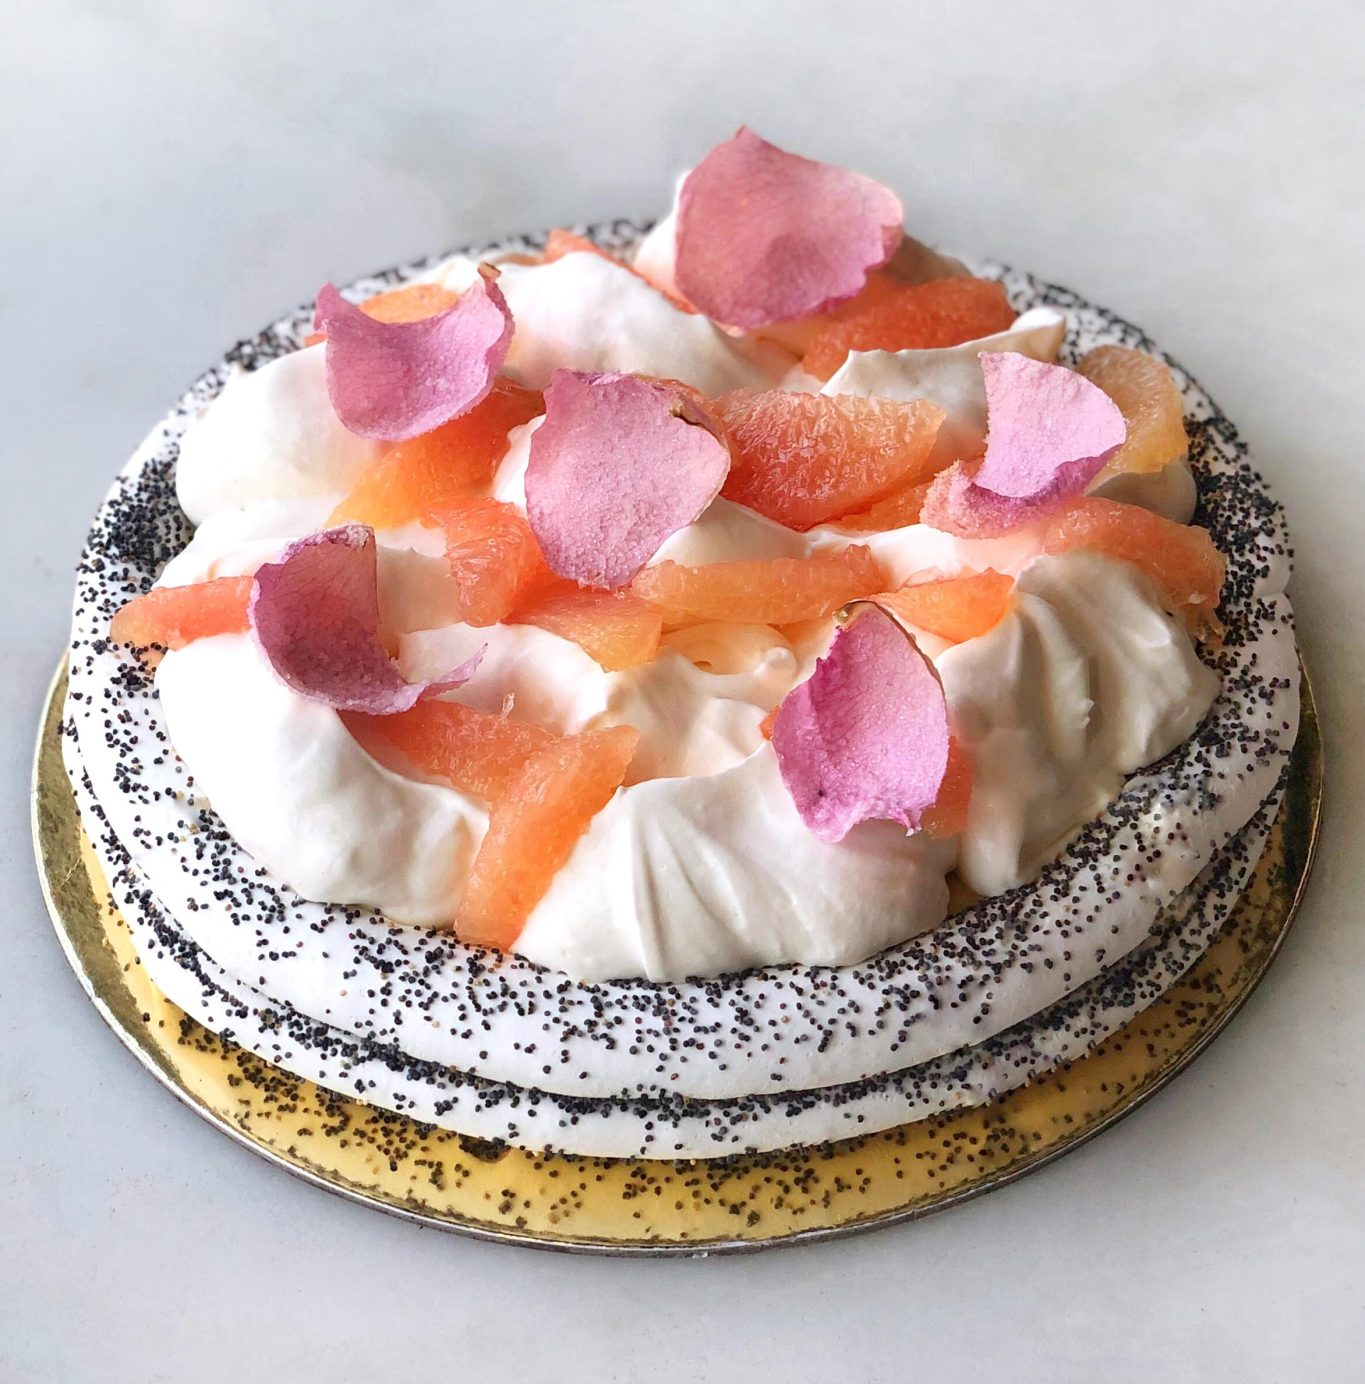 DAB large grapefruit rose poppyseed pavlova